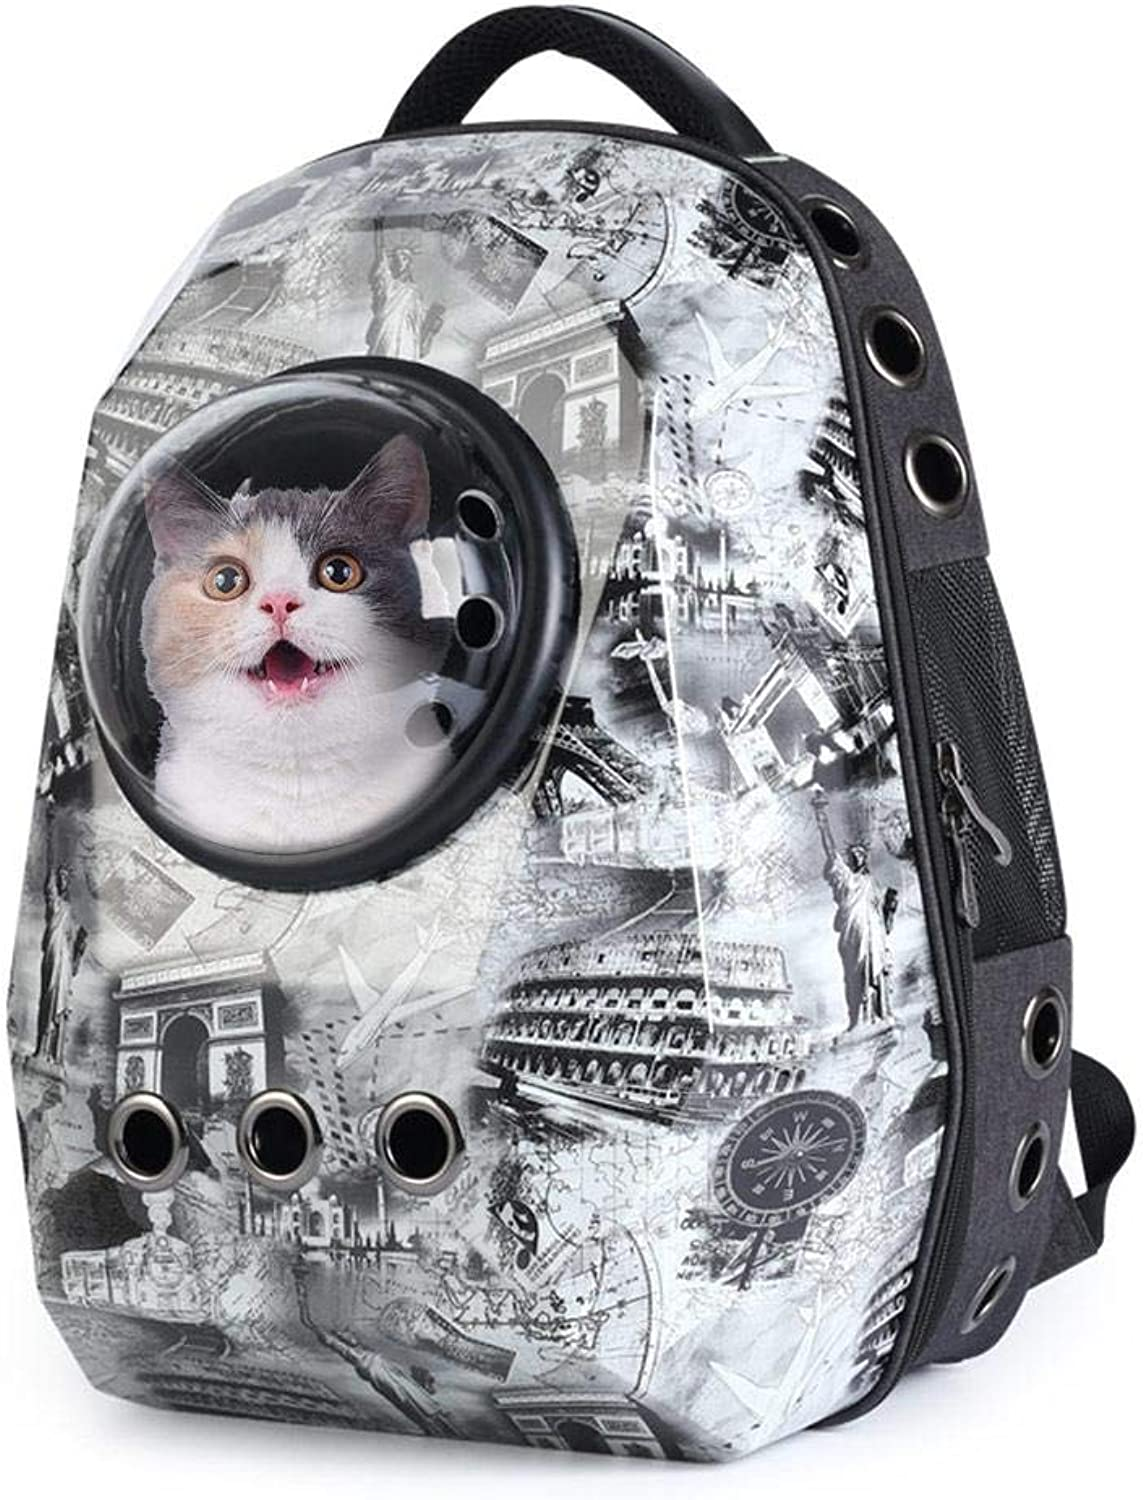 HoneybeeLY Portable Travel Pet Carrier Backpack with Visual Window & Ventilated Holes Design for Cat and Small Dog, Innovative Space Capsule Bubble and AntiEscape Lock Design